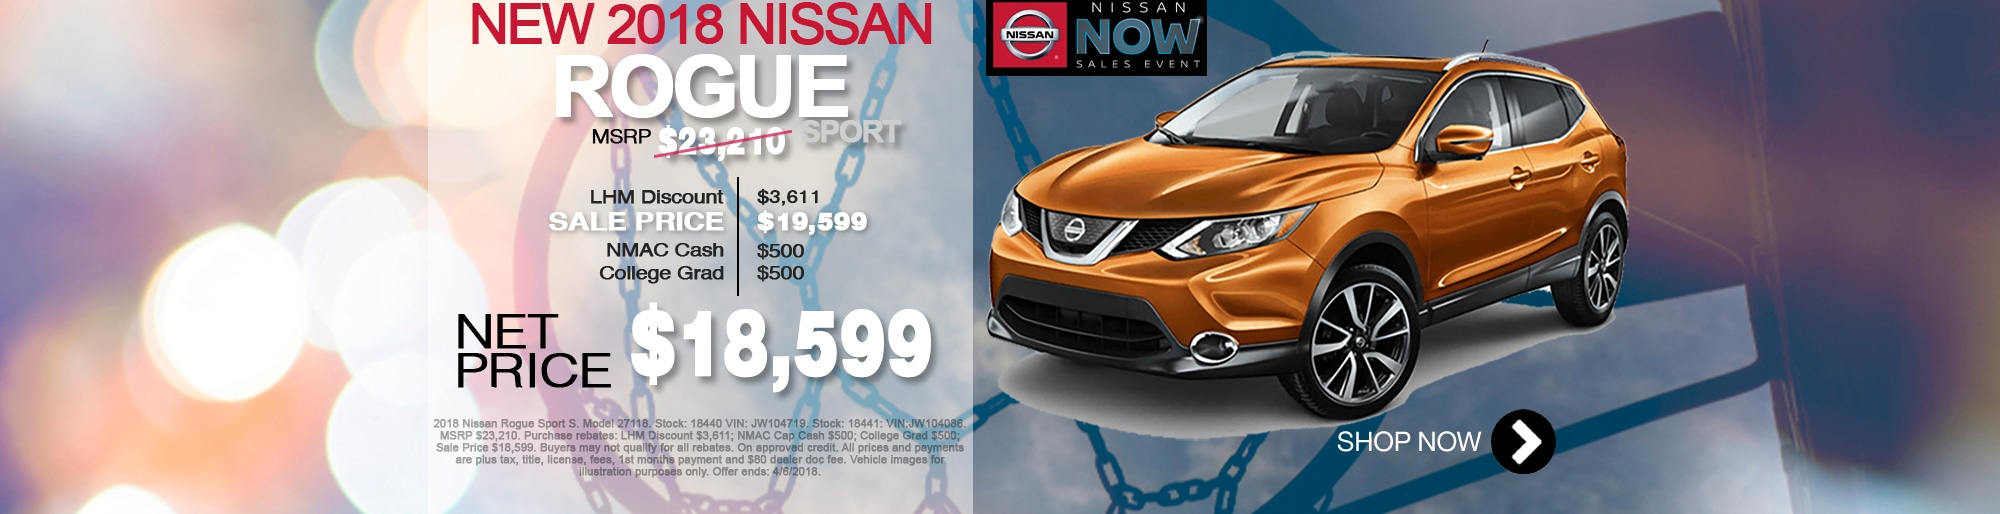 New Nissan Rogue For Sale March Special Net Price $18,599 Larry H Miller Nissan Corona